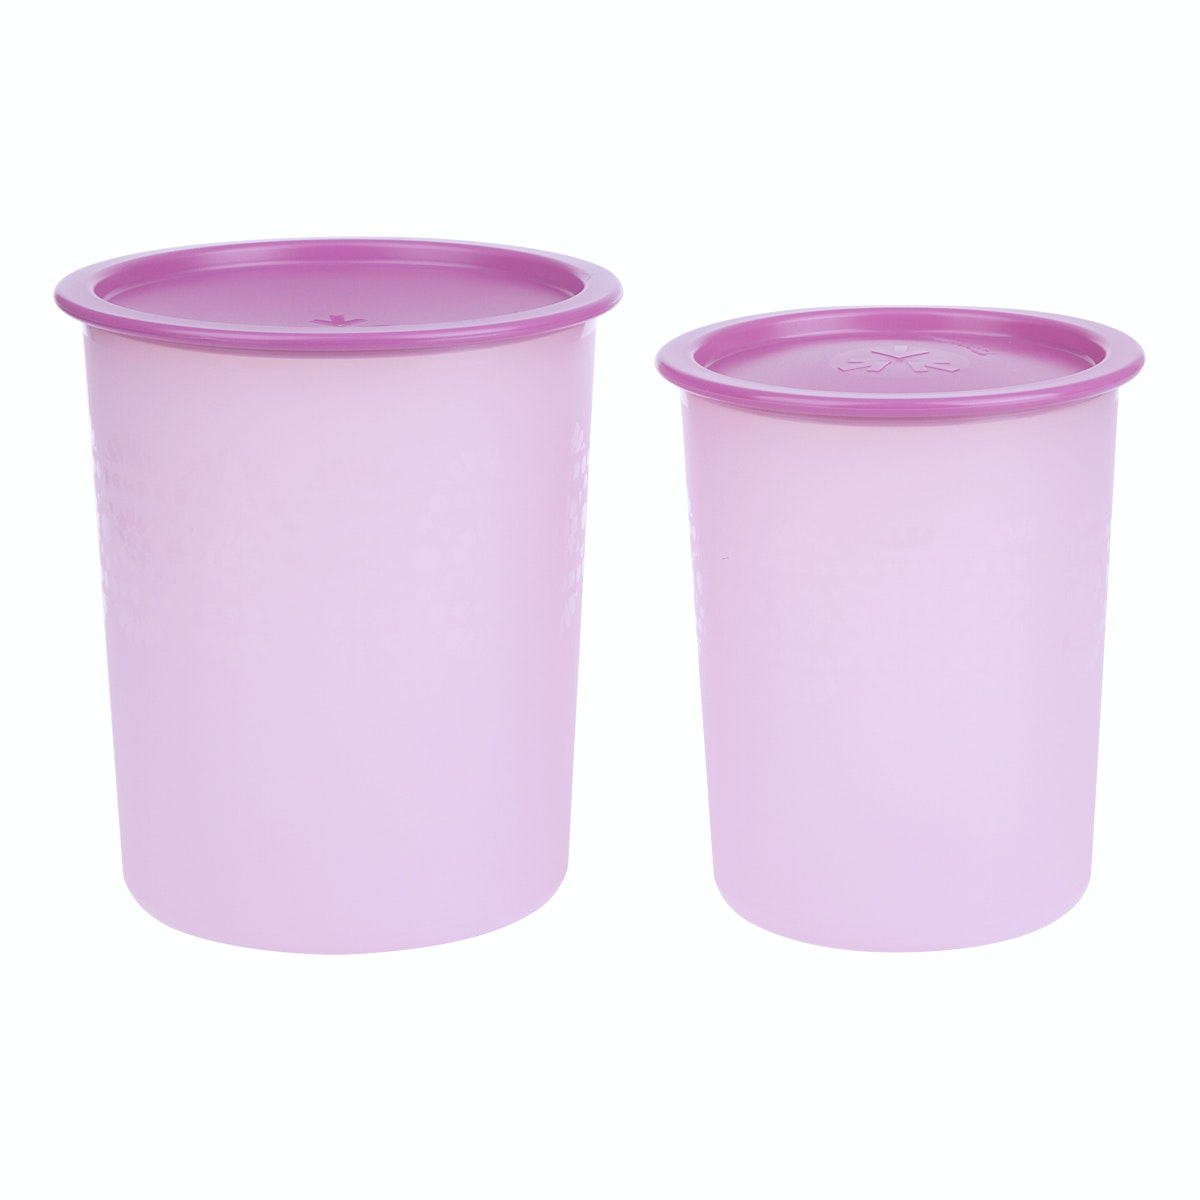 Tupperware Small Mozaic Canister (2pcs)